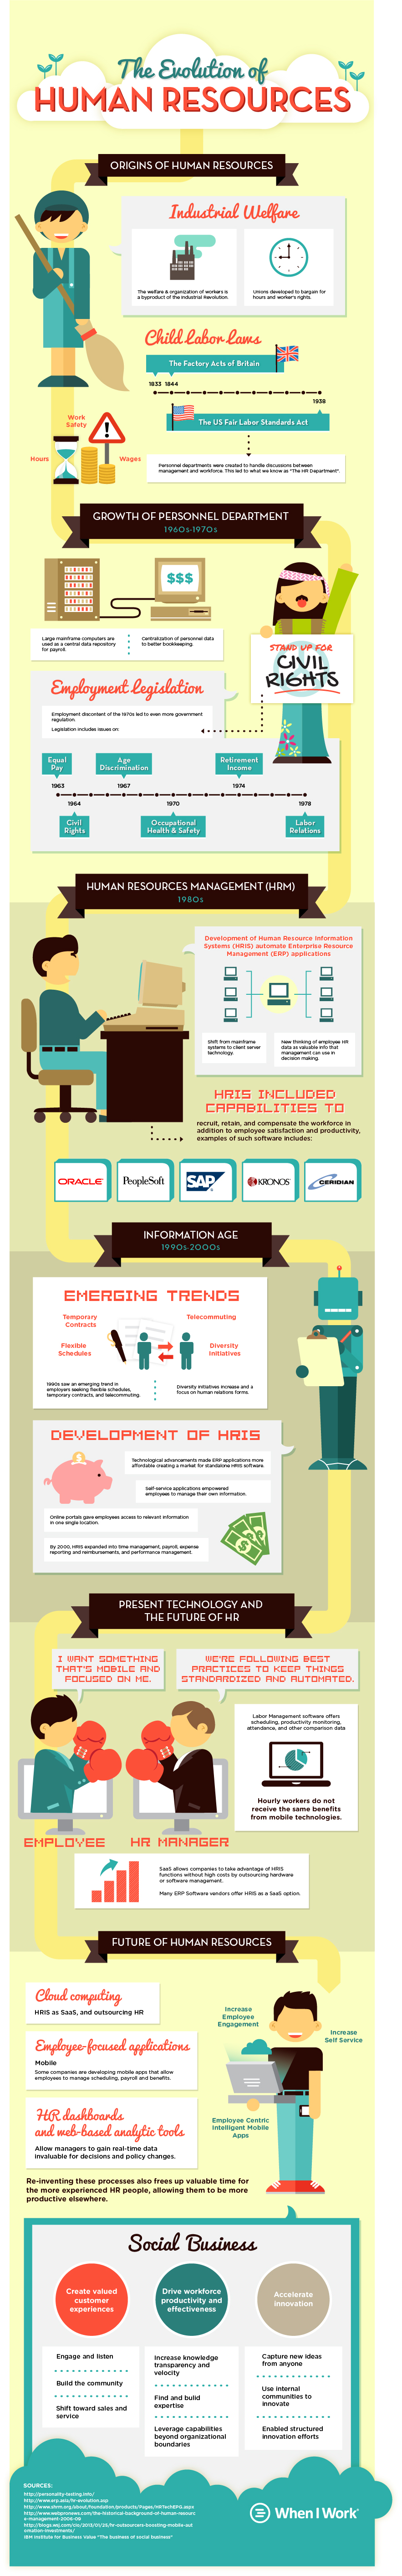 How mobile technology is changing the business world.